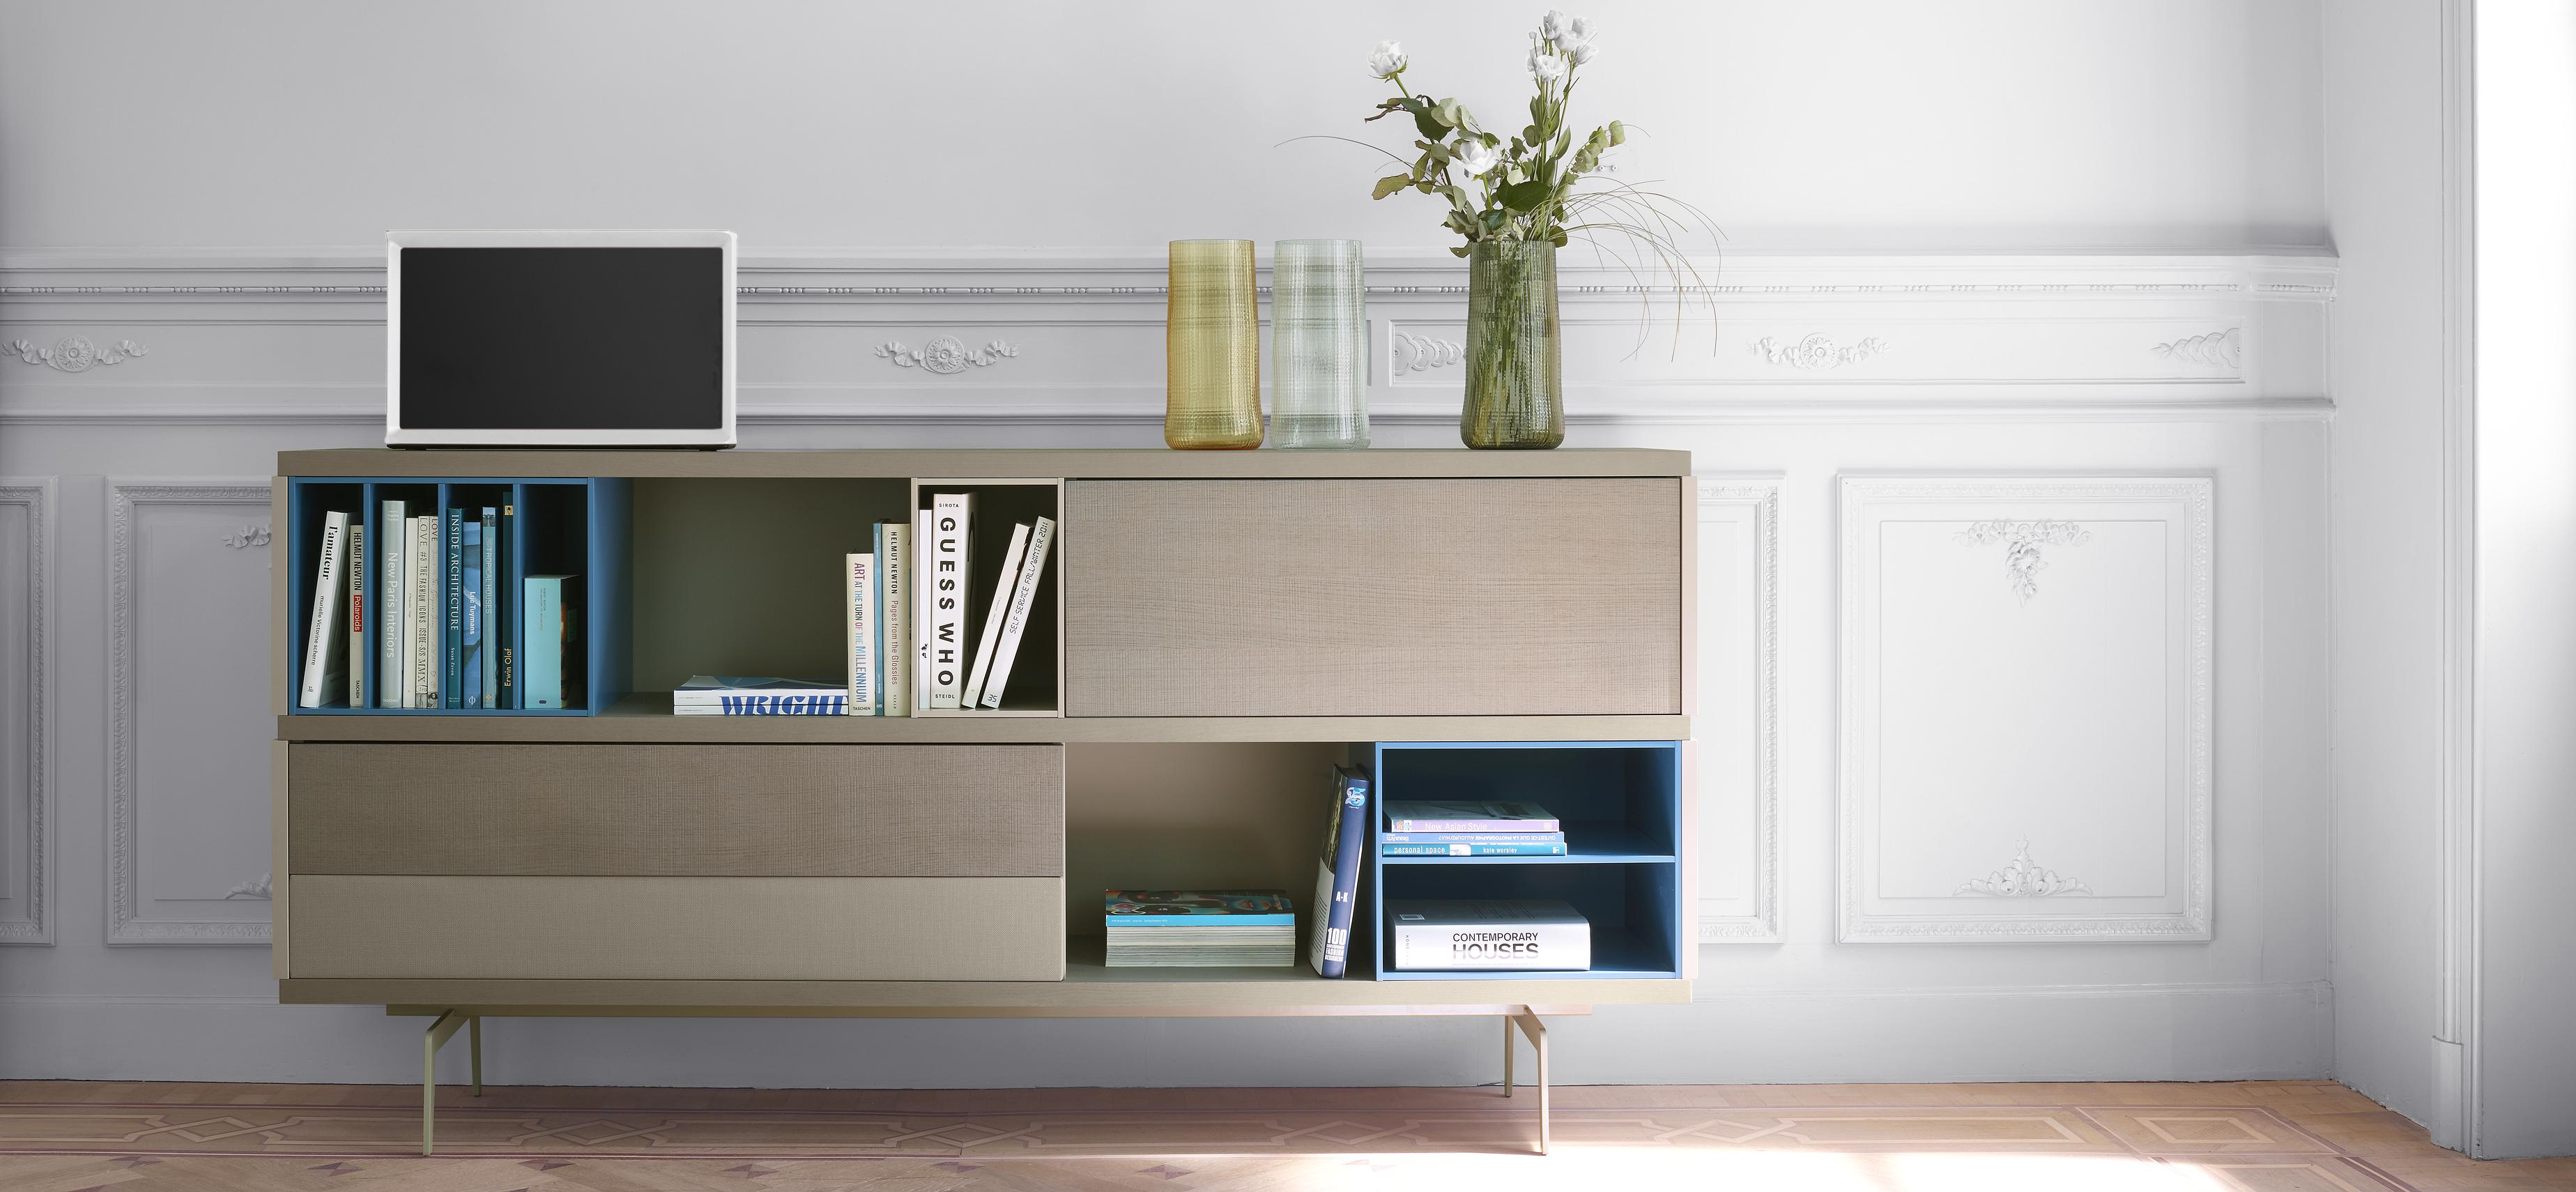 MIXTE LIVING ROOM, Sideboards From Designer : Mauro